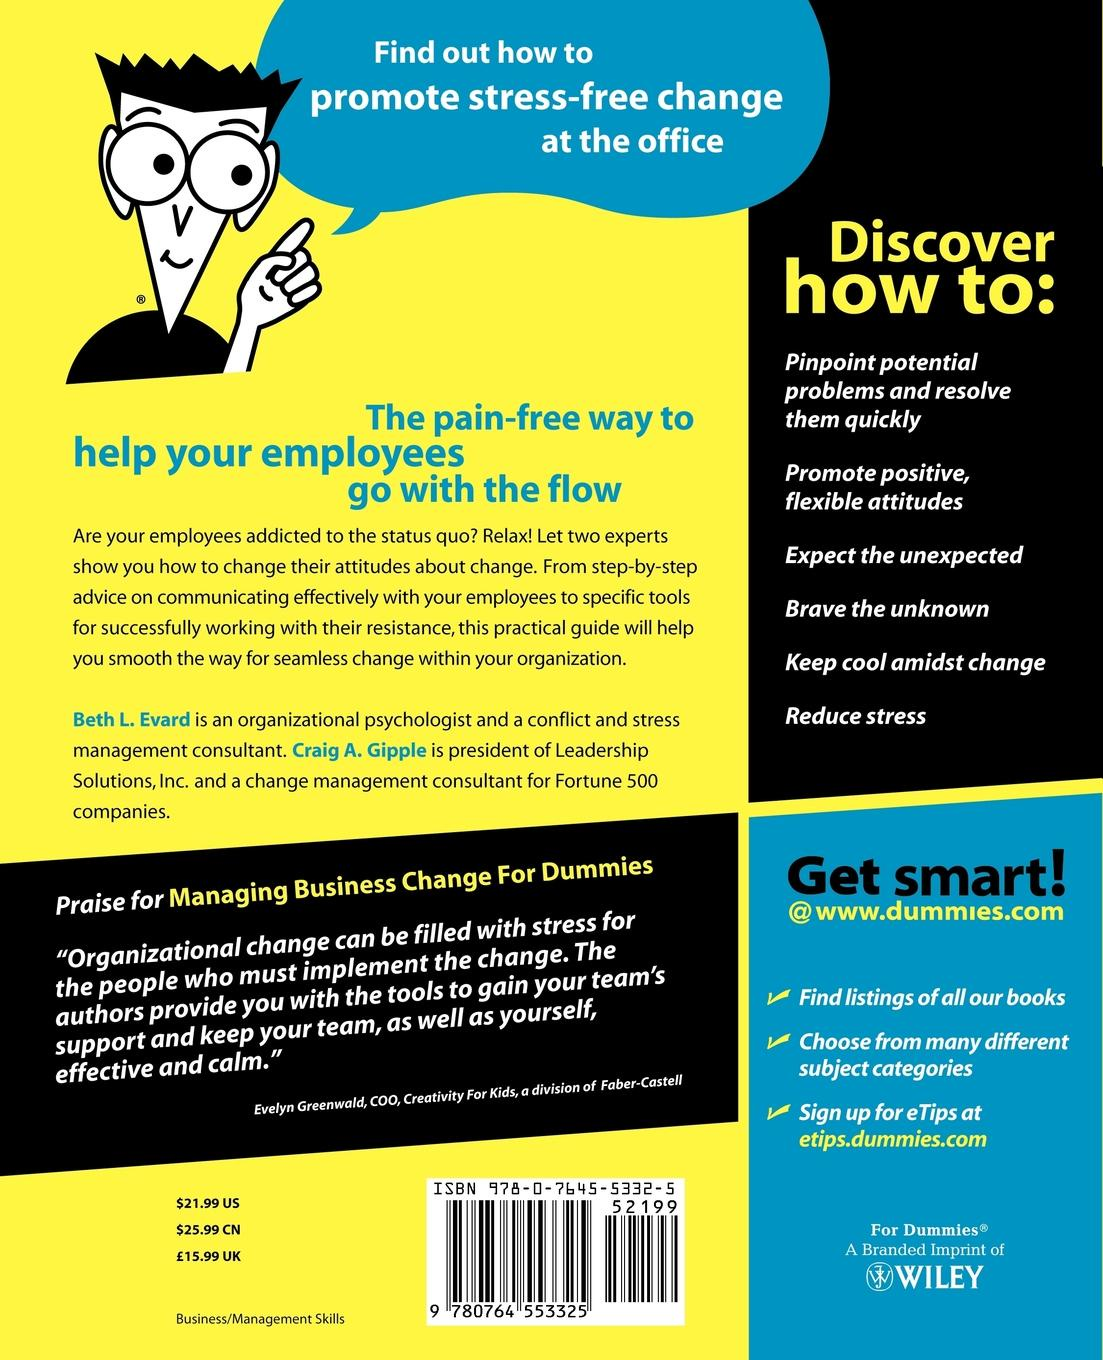 Beth L. Evard, Craig A. Gipple, Evard Managing Business Change for Dummies richard pettinger business studies for dummies